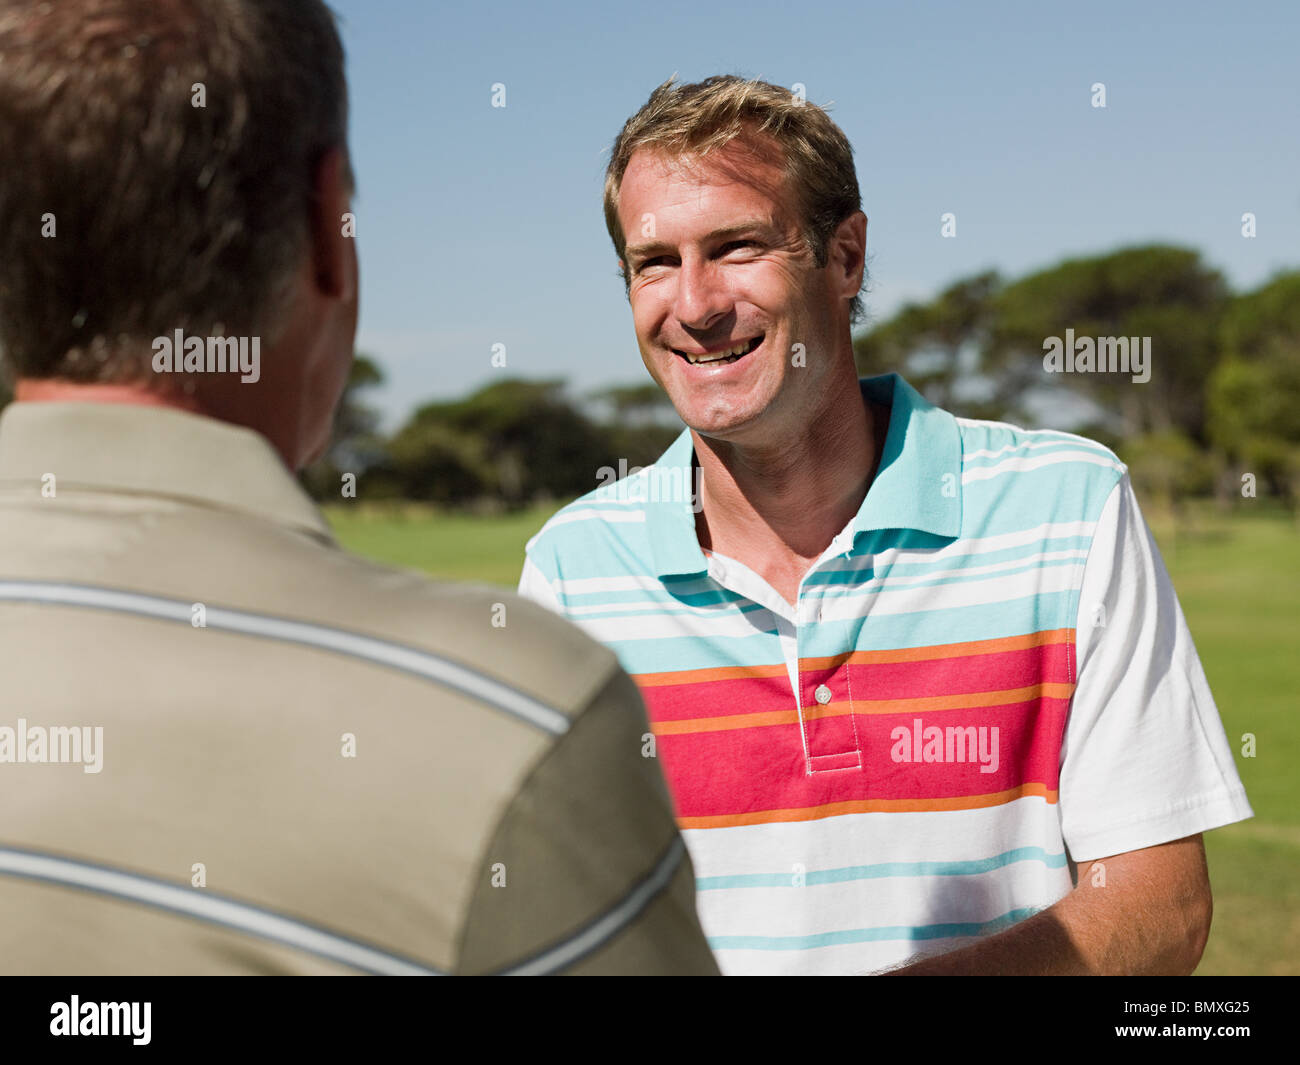 Two mature men playing golf together - Stock Image